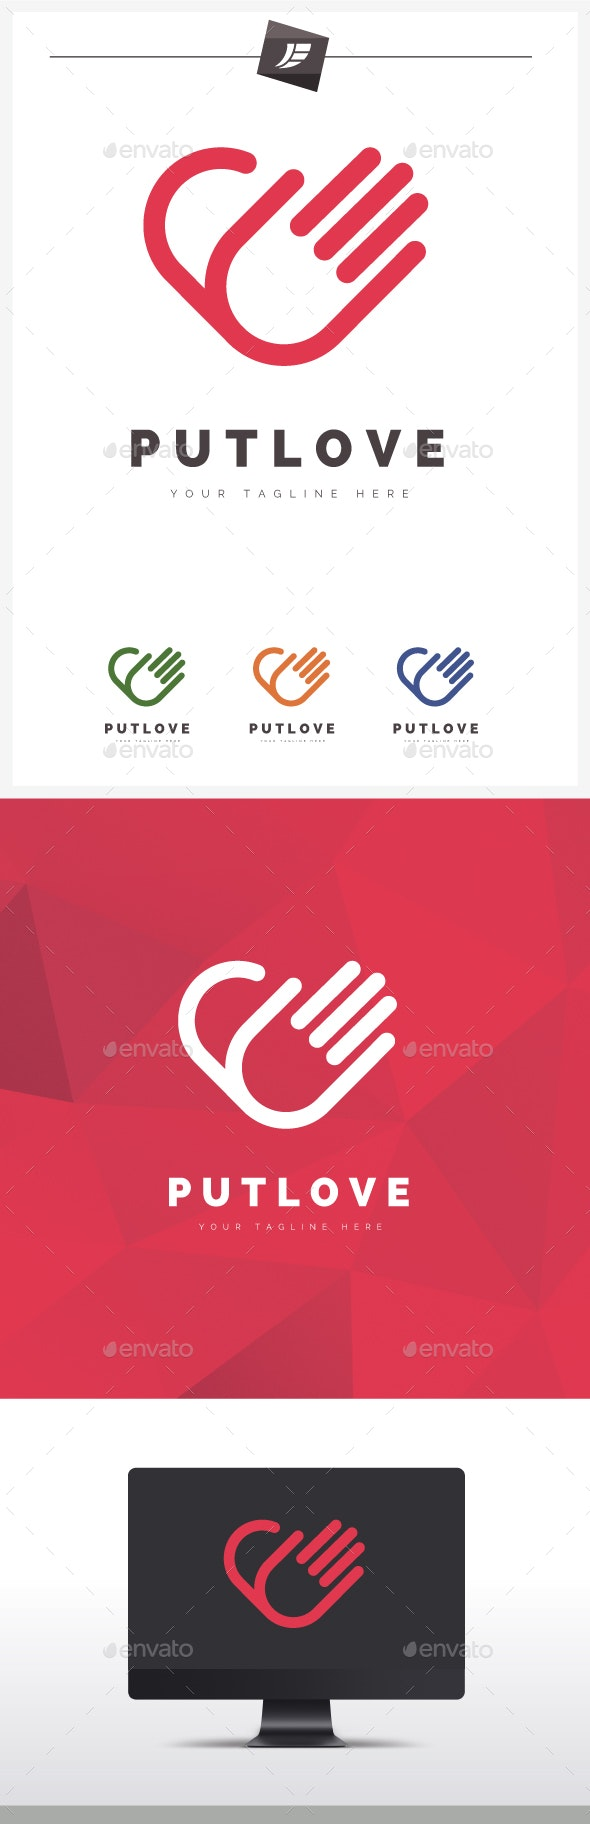 Put Love Logo por juelogo / GraphicRiver